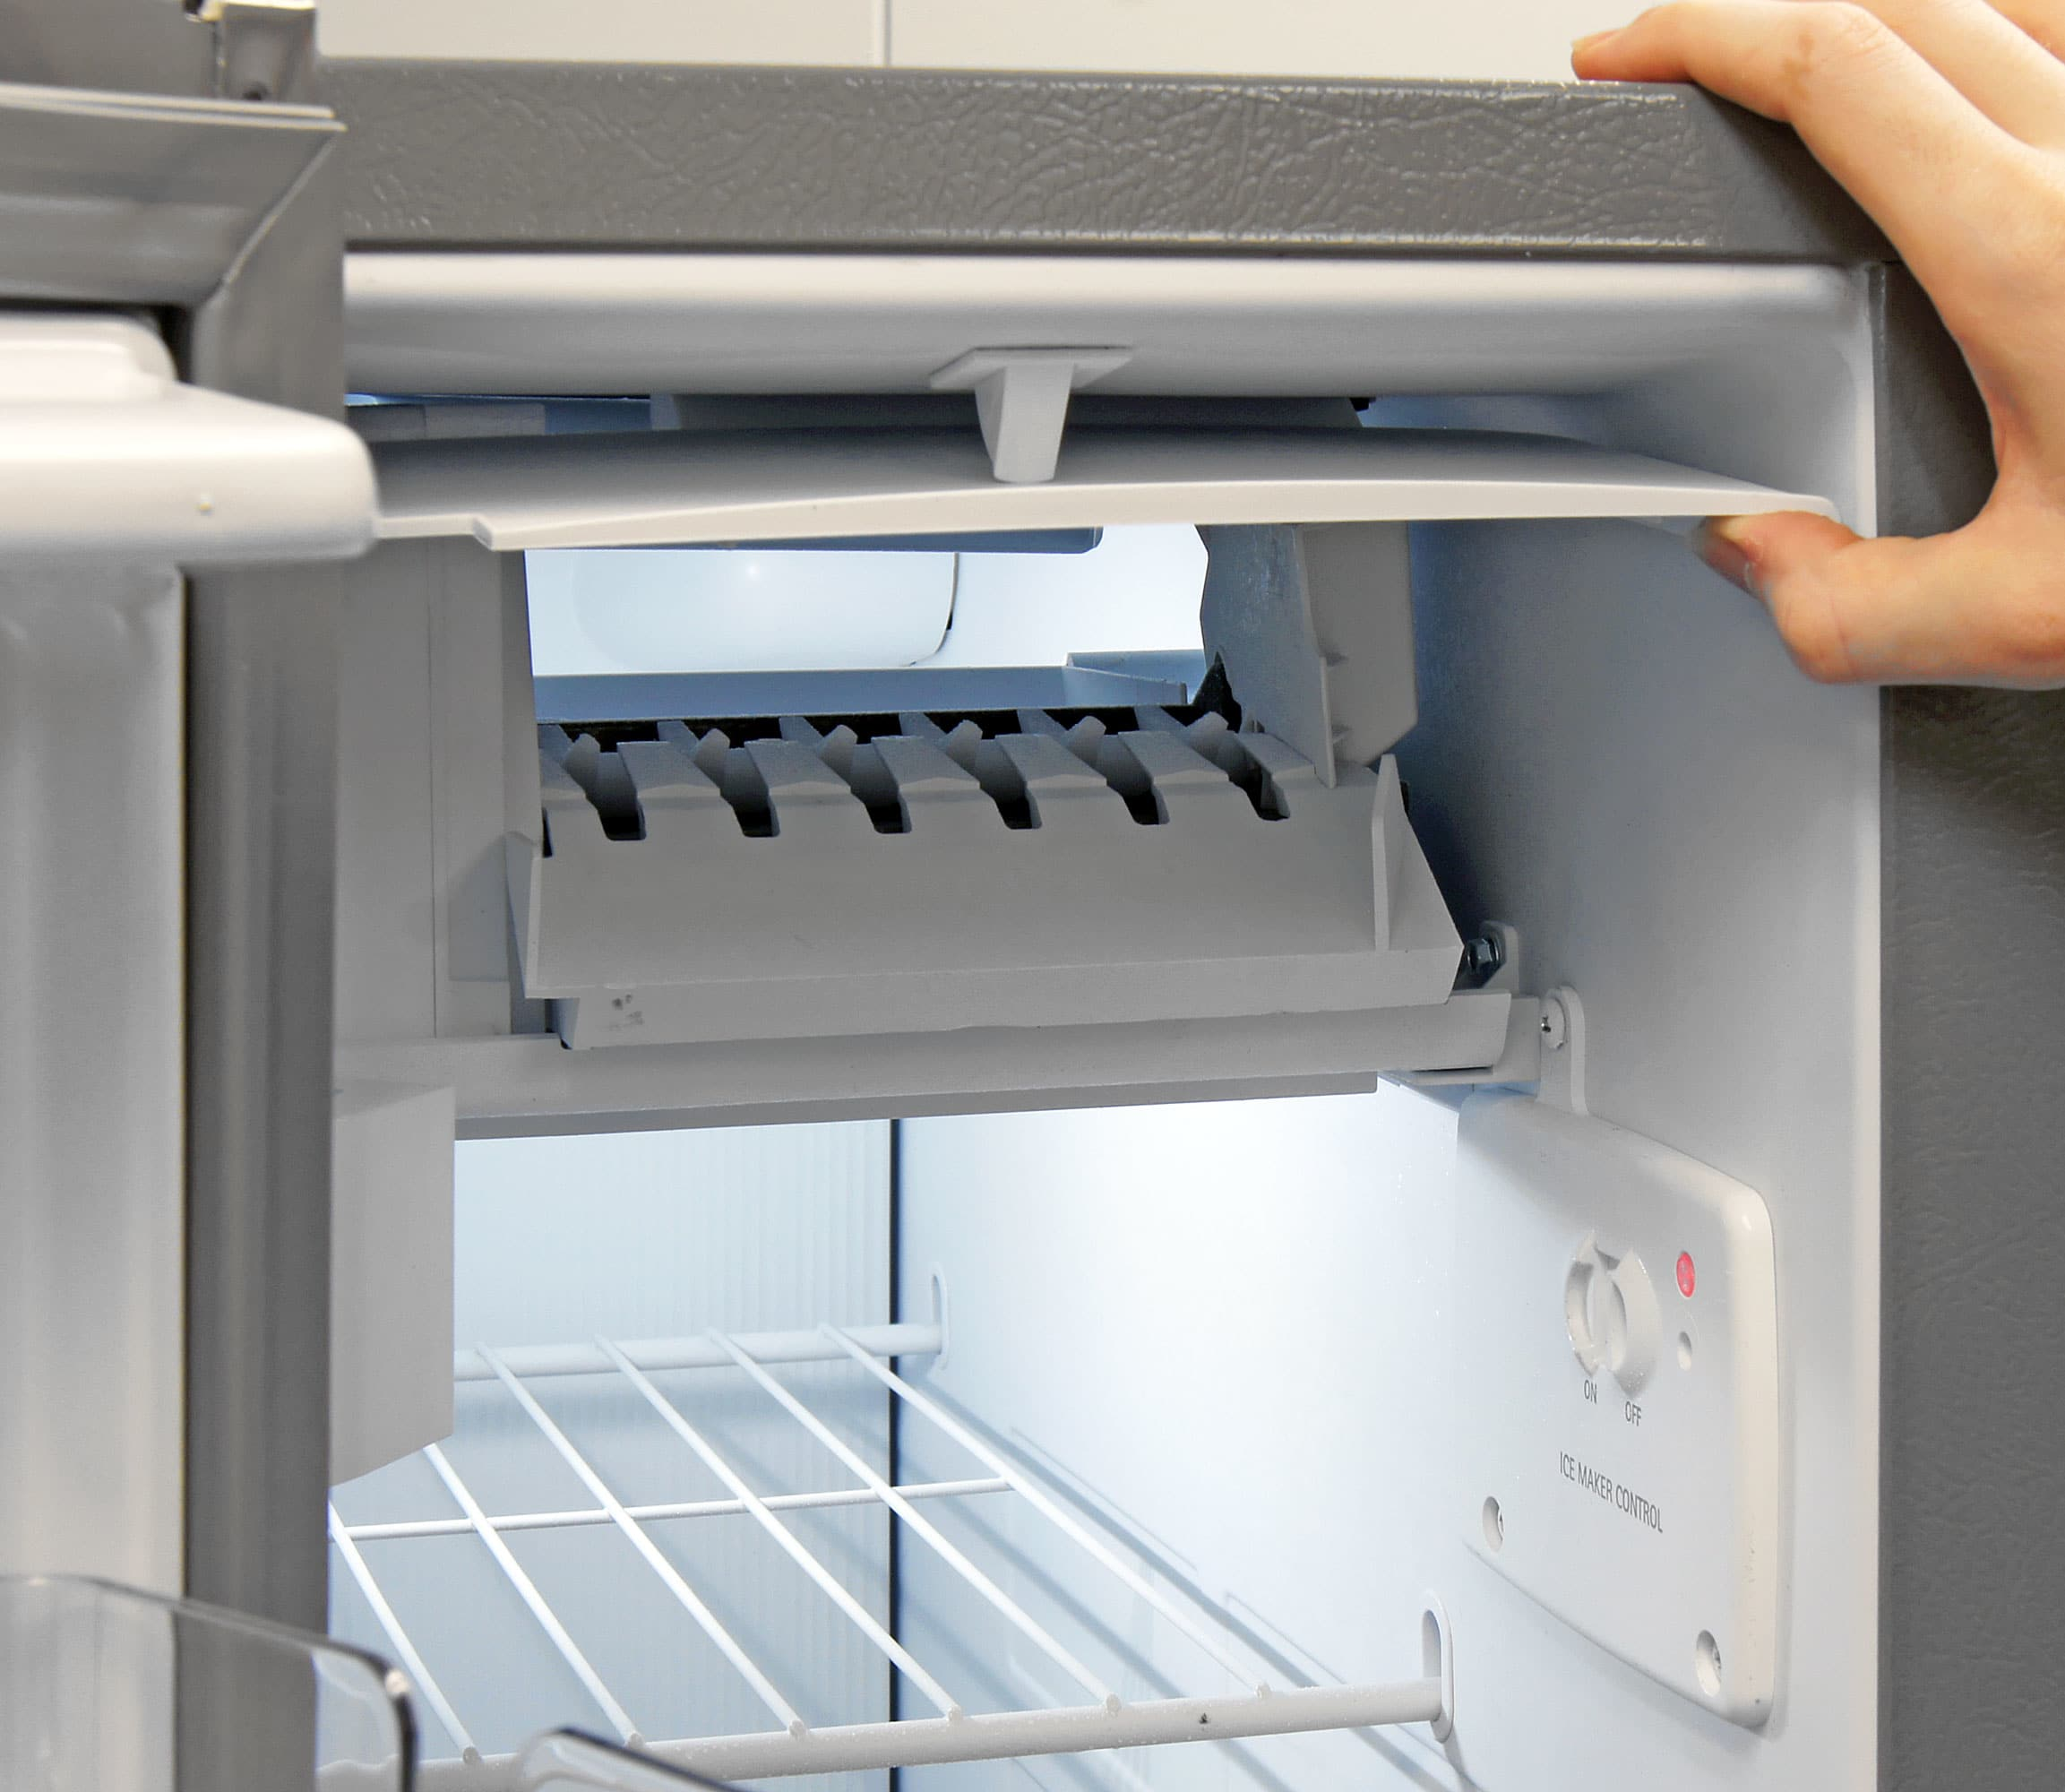 The machine that actually makes the ice is found at the top of the KitchenAid KSF22C4CYY's freezer compartment. The flashing red dot on the side is the dispenser's on/off switch.